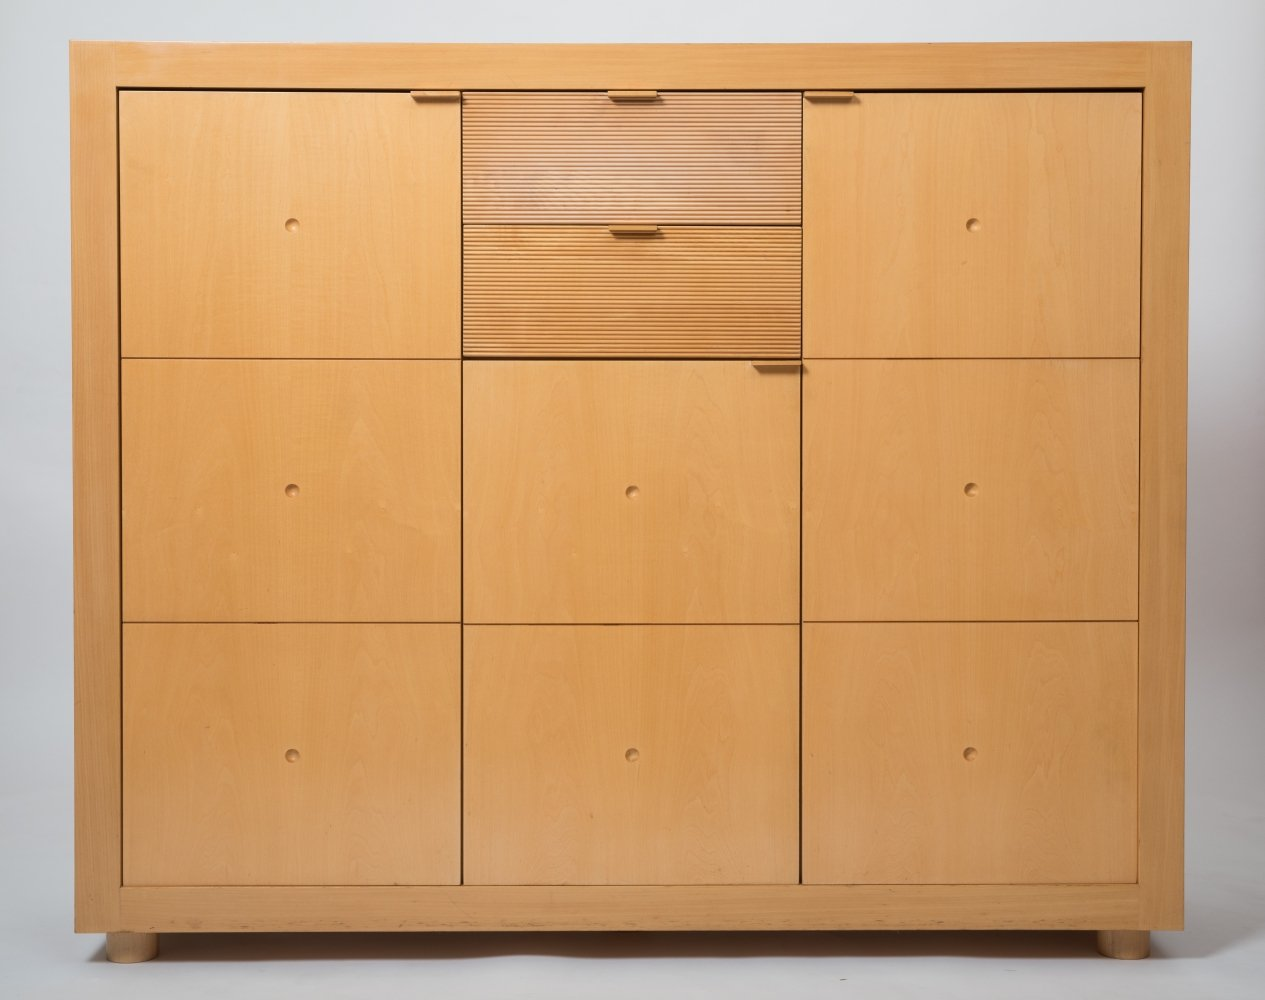 Postmodern Cabinet by Hans Eichenberger for Rothlisberger Kollektion Switzerland